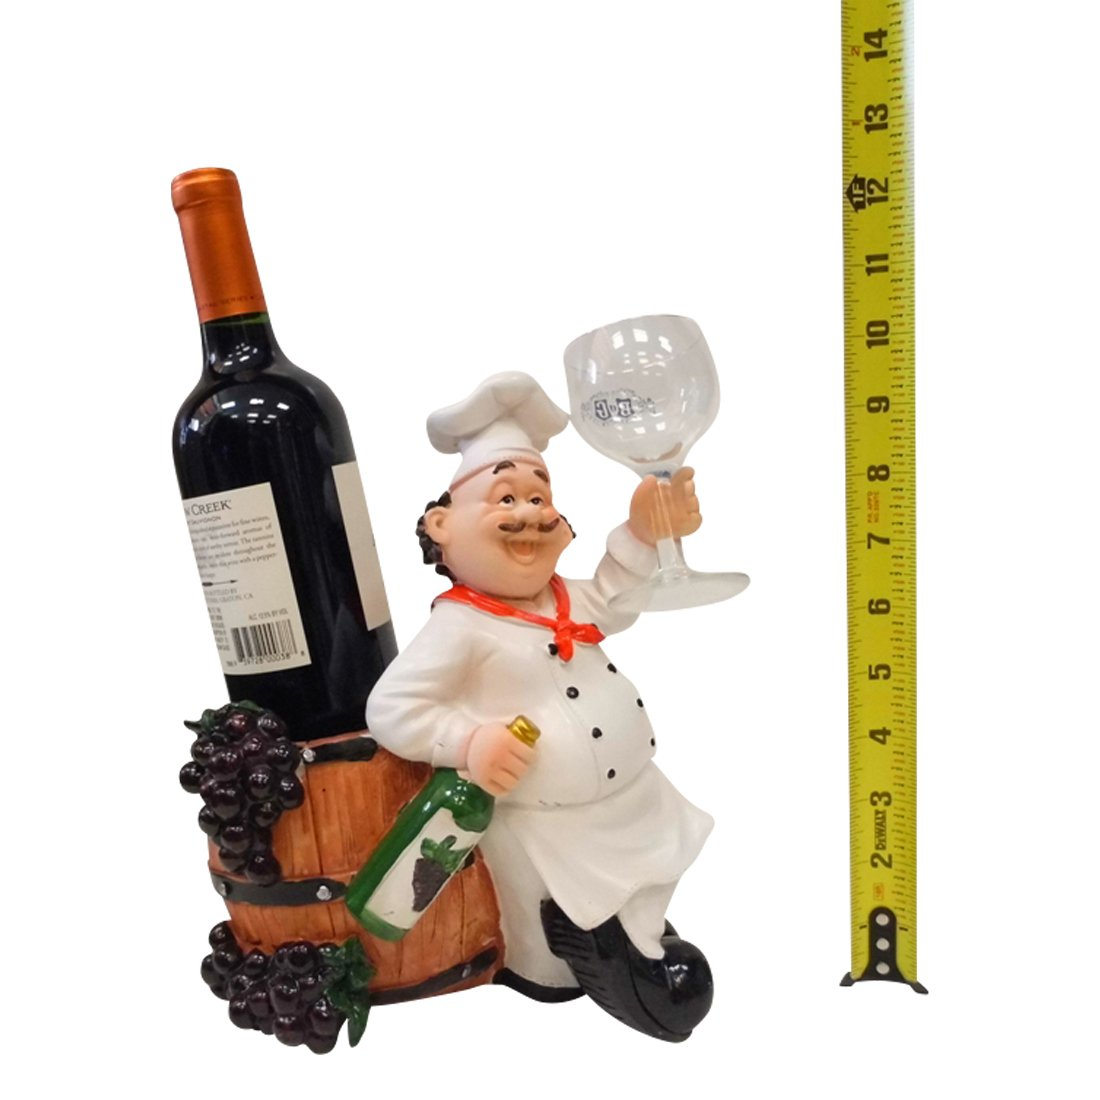 awesome Chef Wine Holder Statue Part - 3: Amazon.com